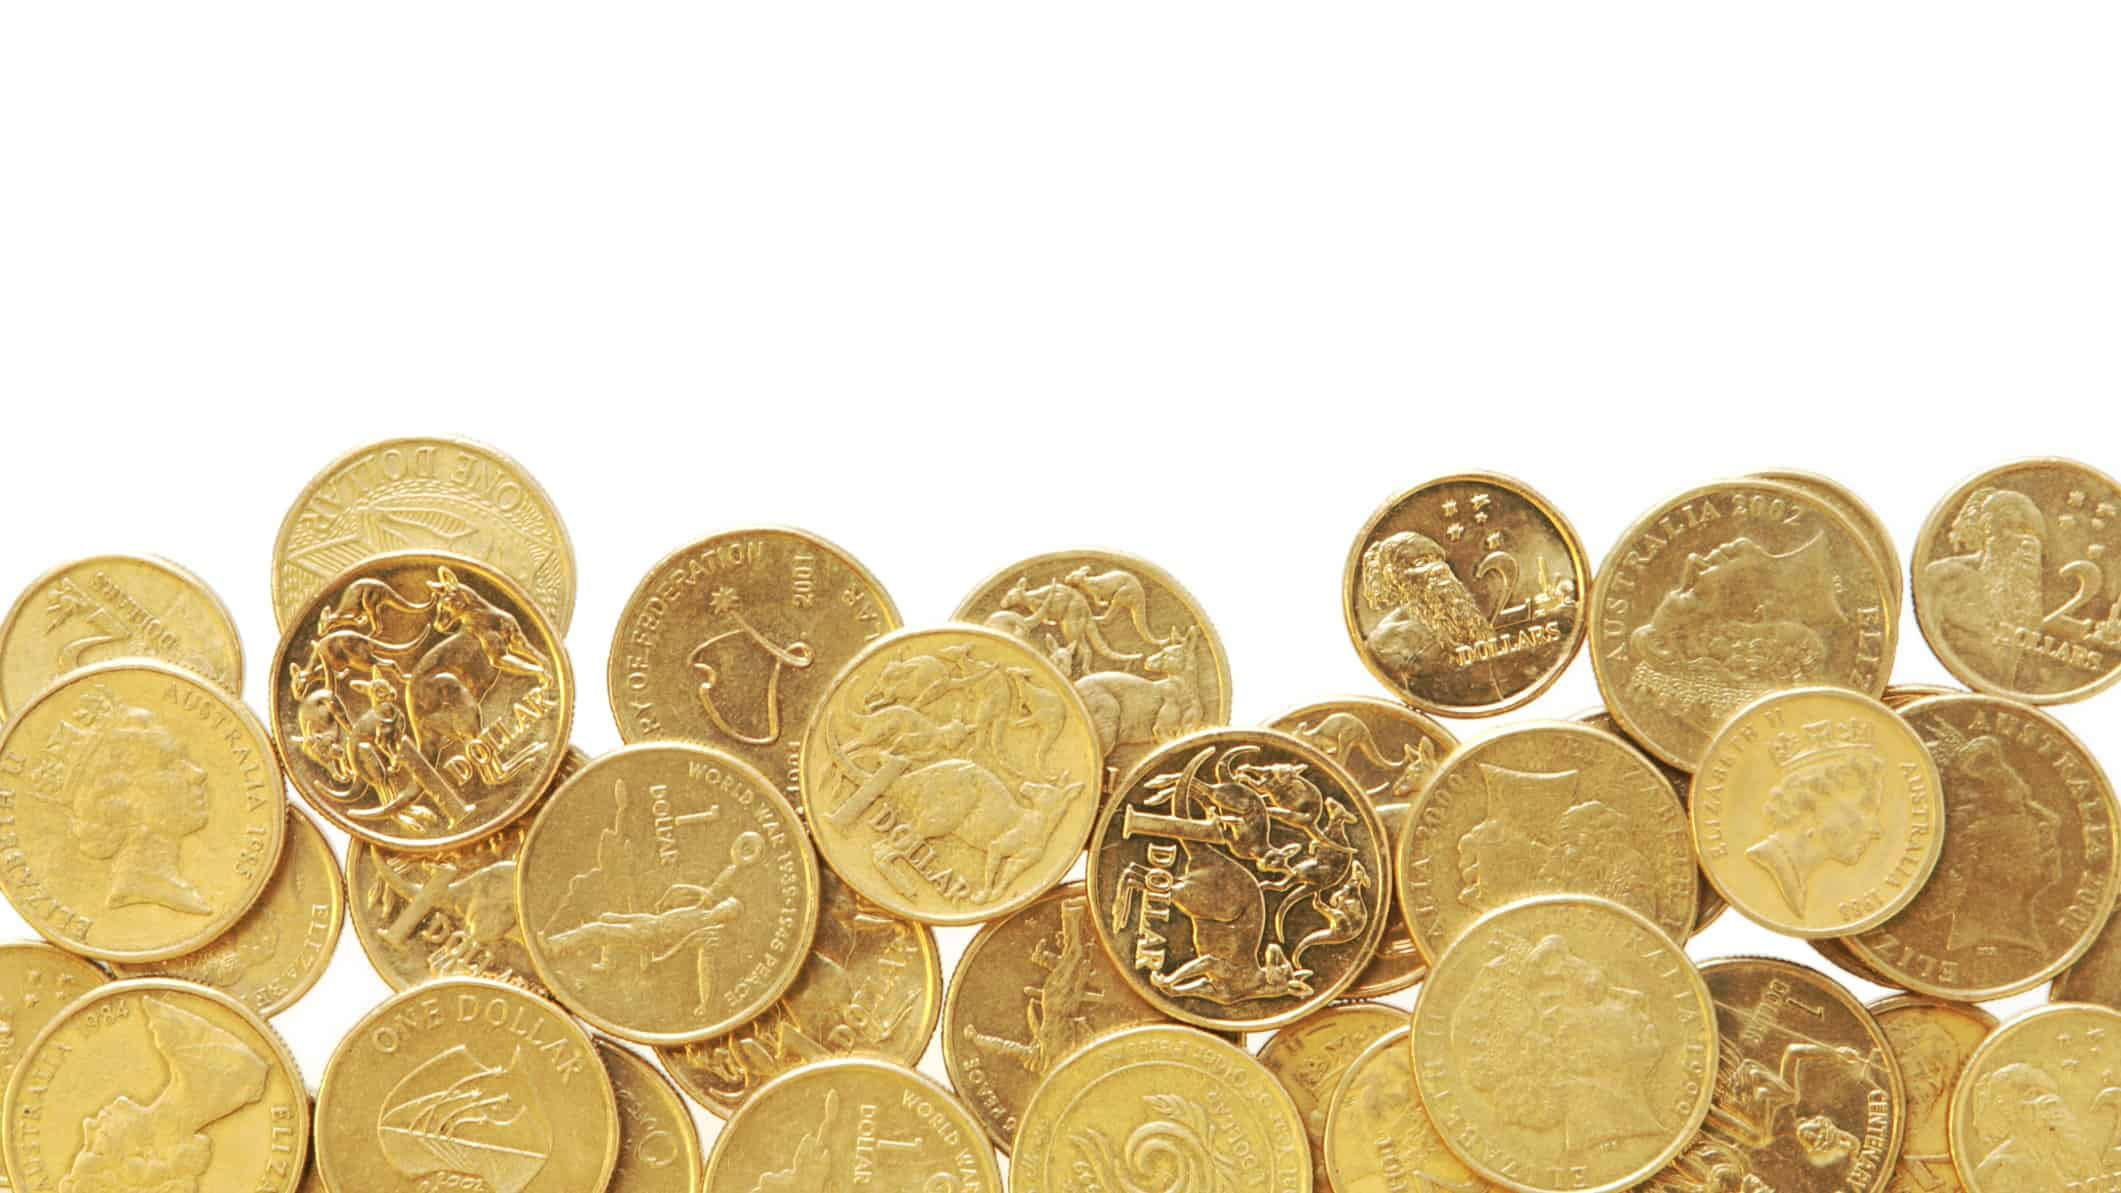 bargain stocks represented by one and two dollars coins in a pile